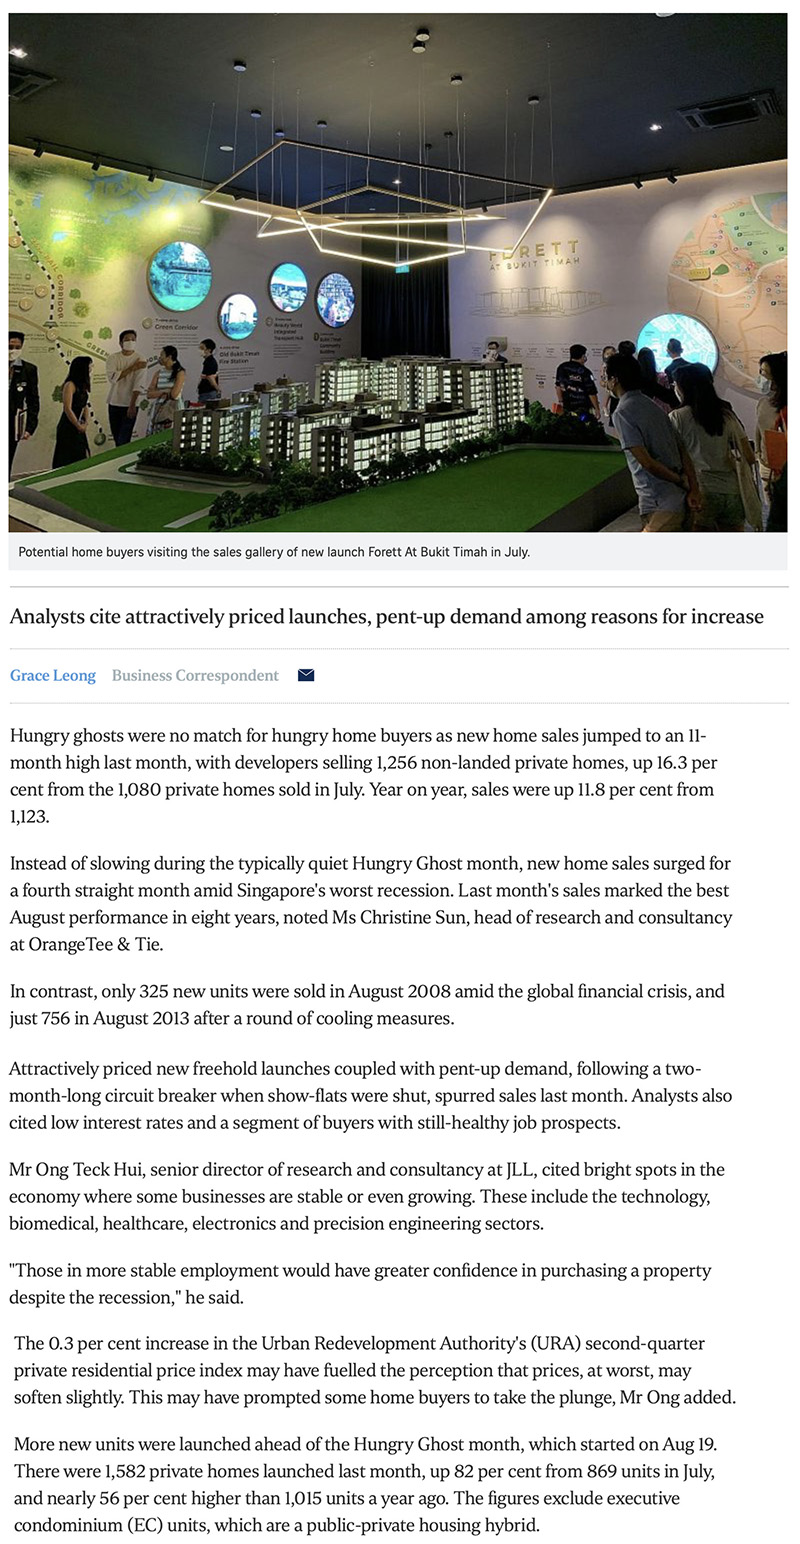 Amber Park - New home sales surge to 11-month high in August 1